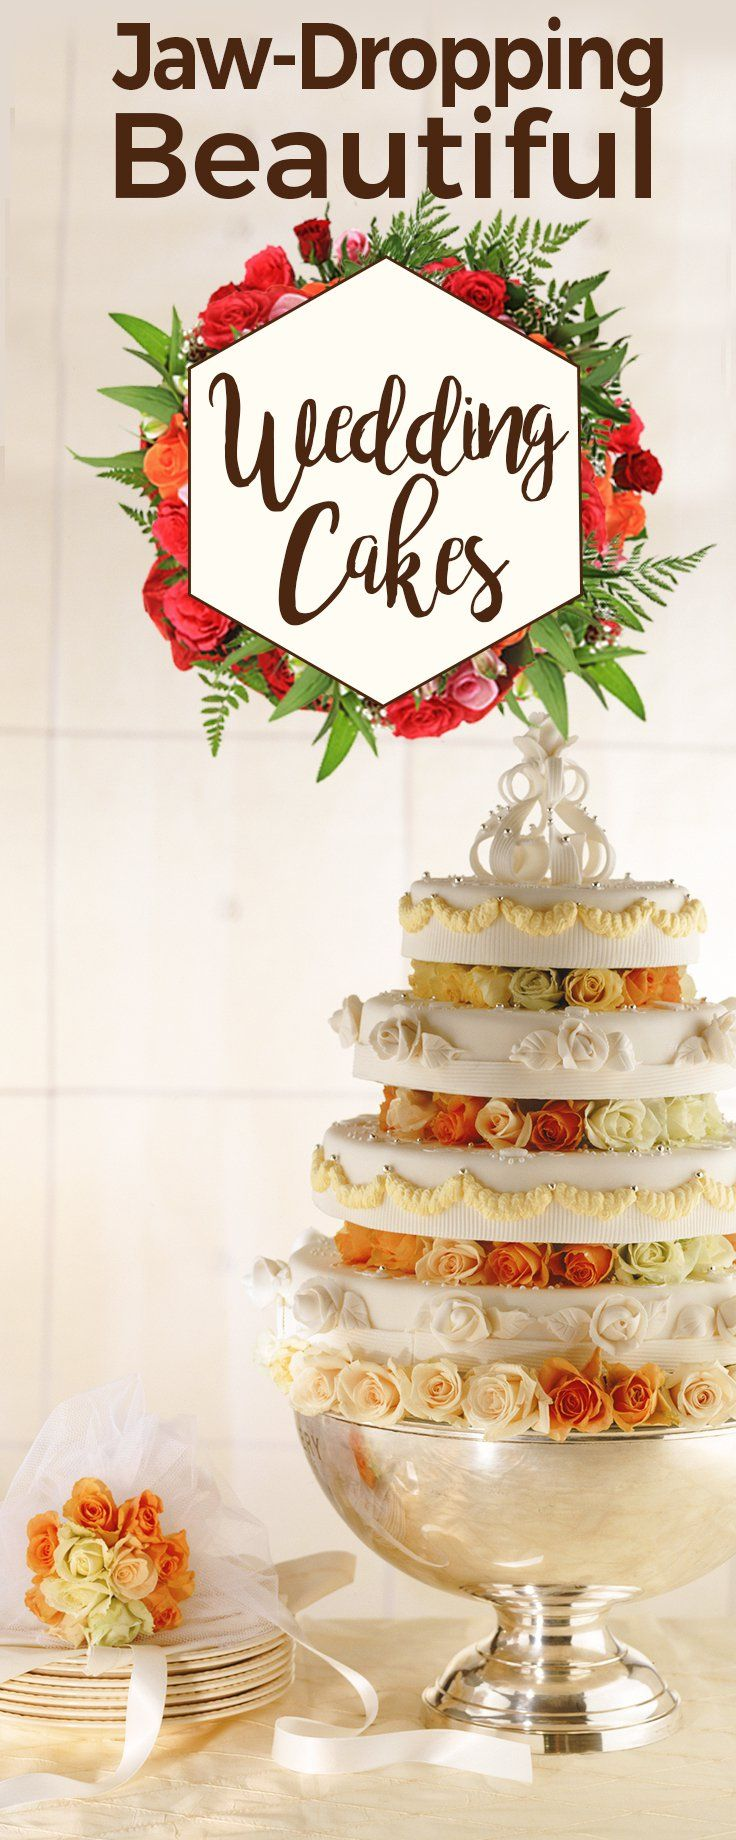 From The Wacky To Downright Jaw Dropping Here Are Most Insane Wedding Cakes